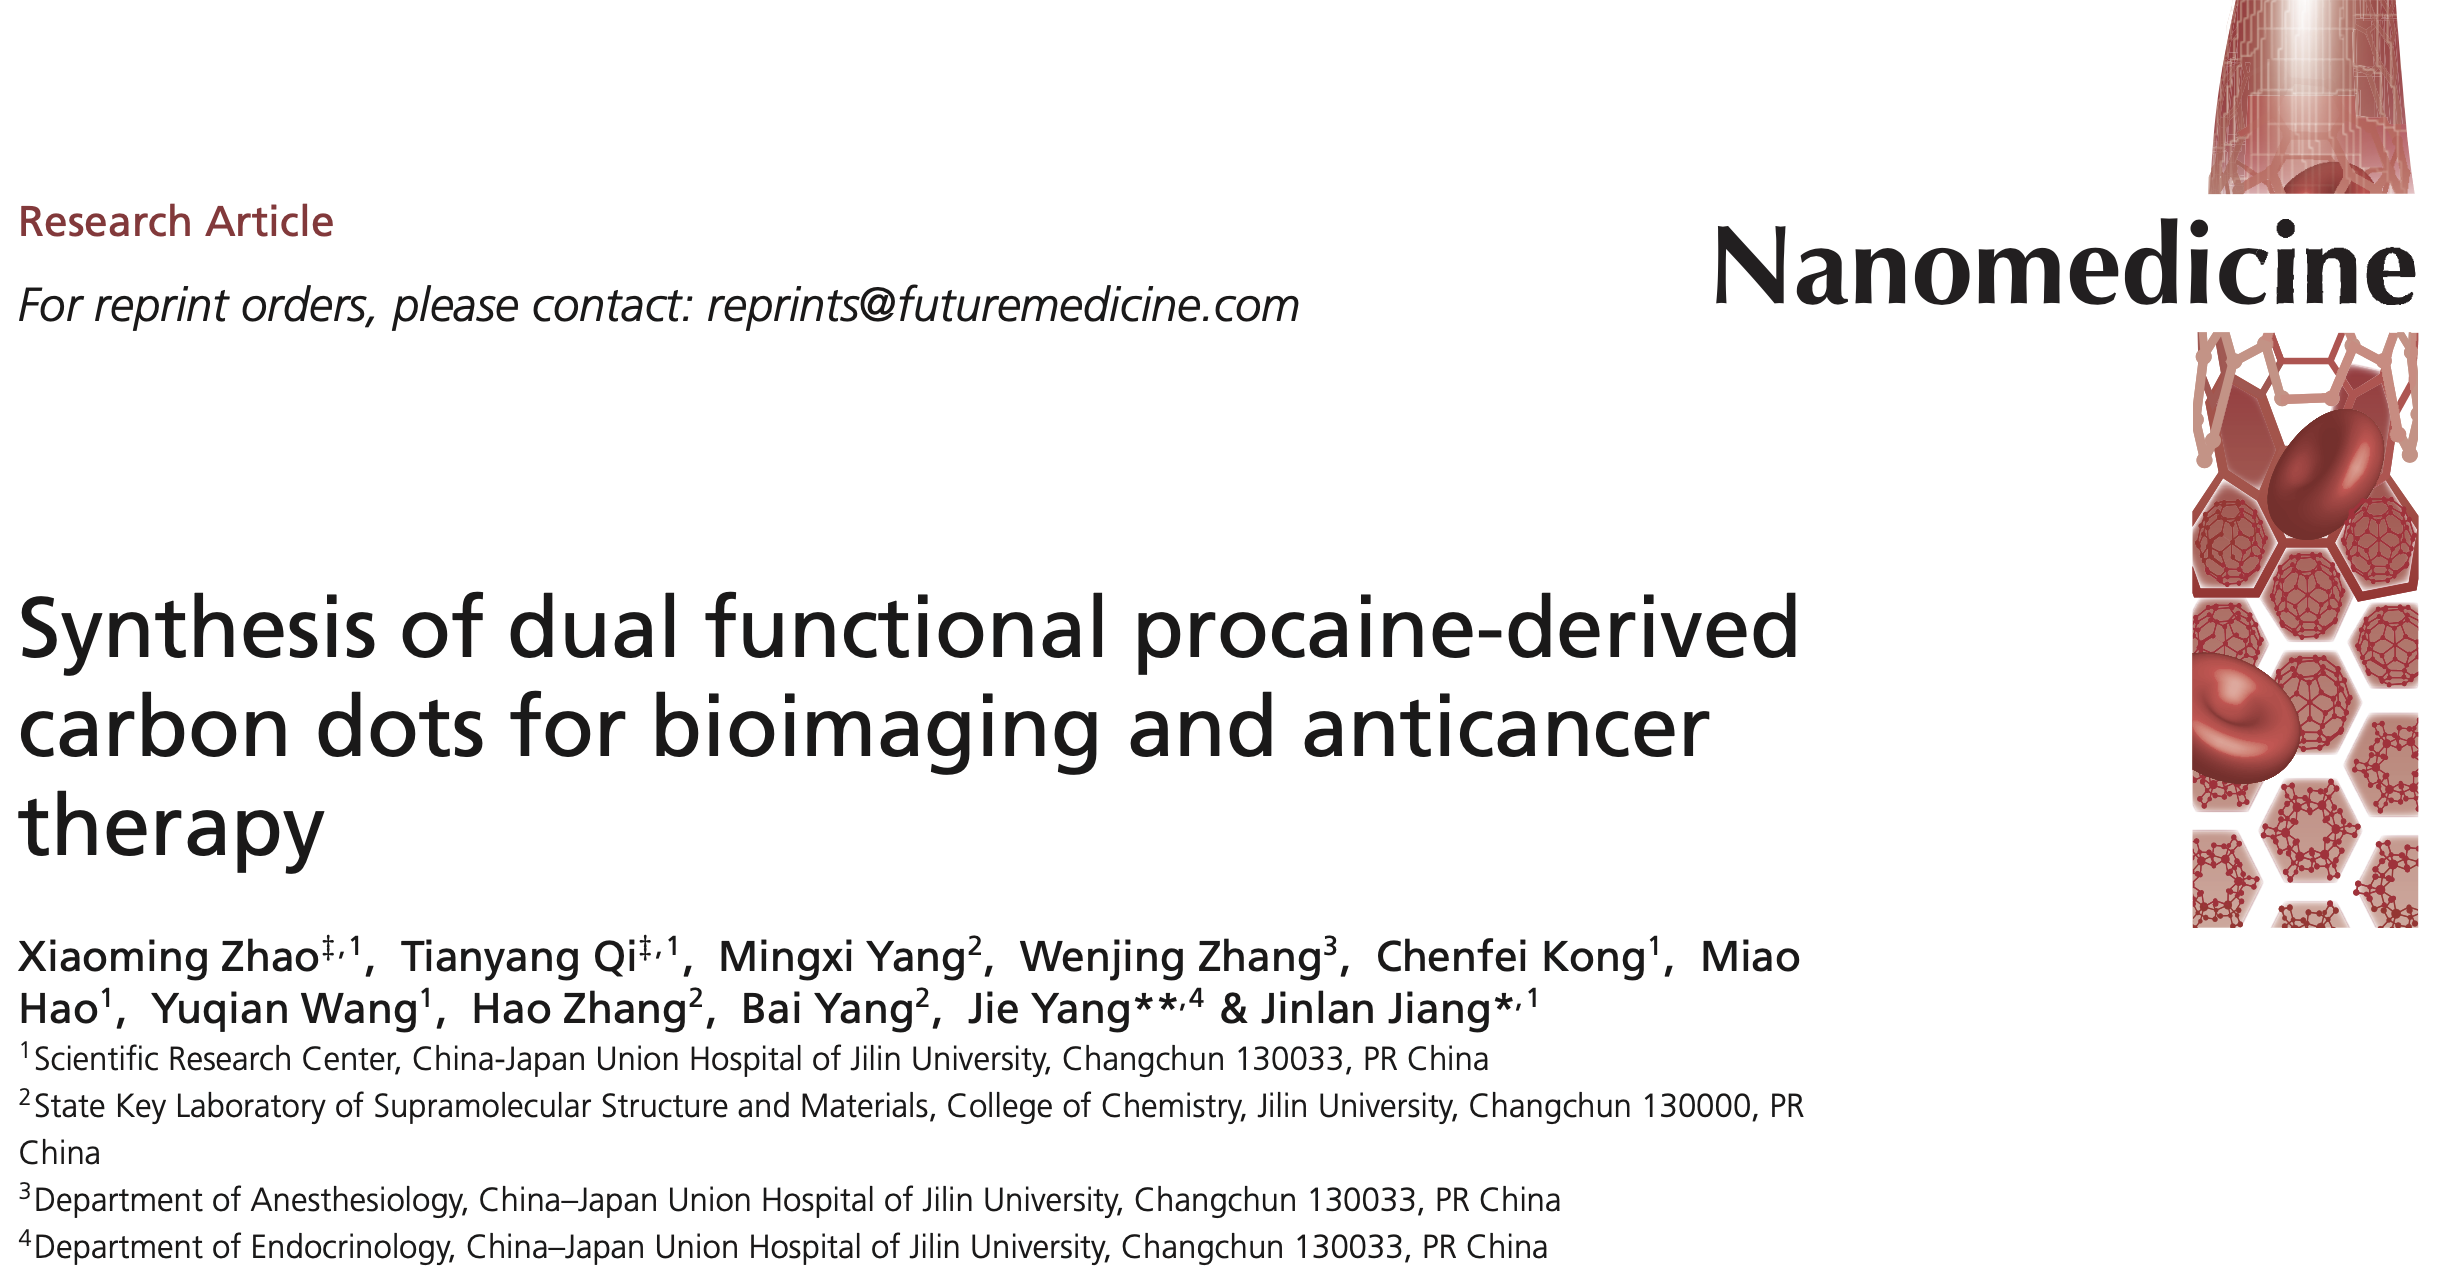 PROCAINE DERIVED CARBON DOTS ANTICANCER ZHAO 2020